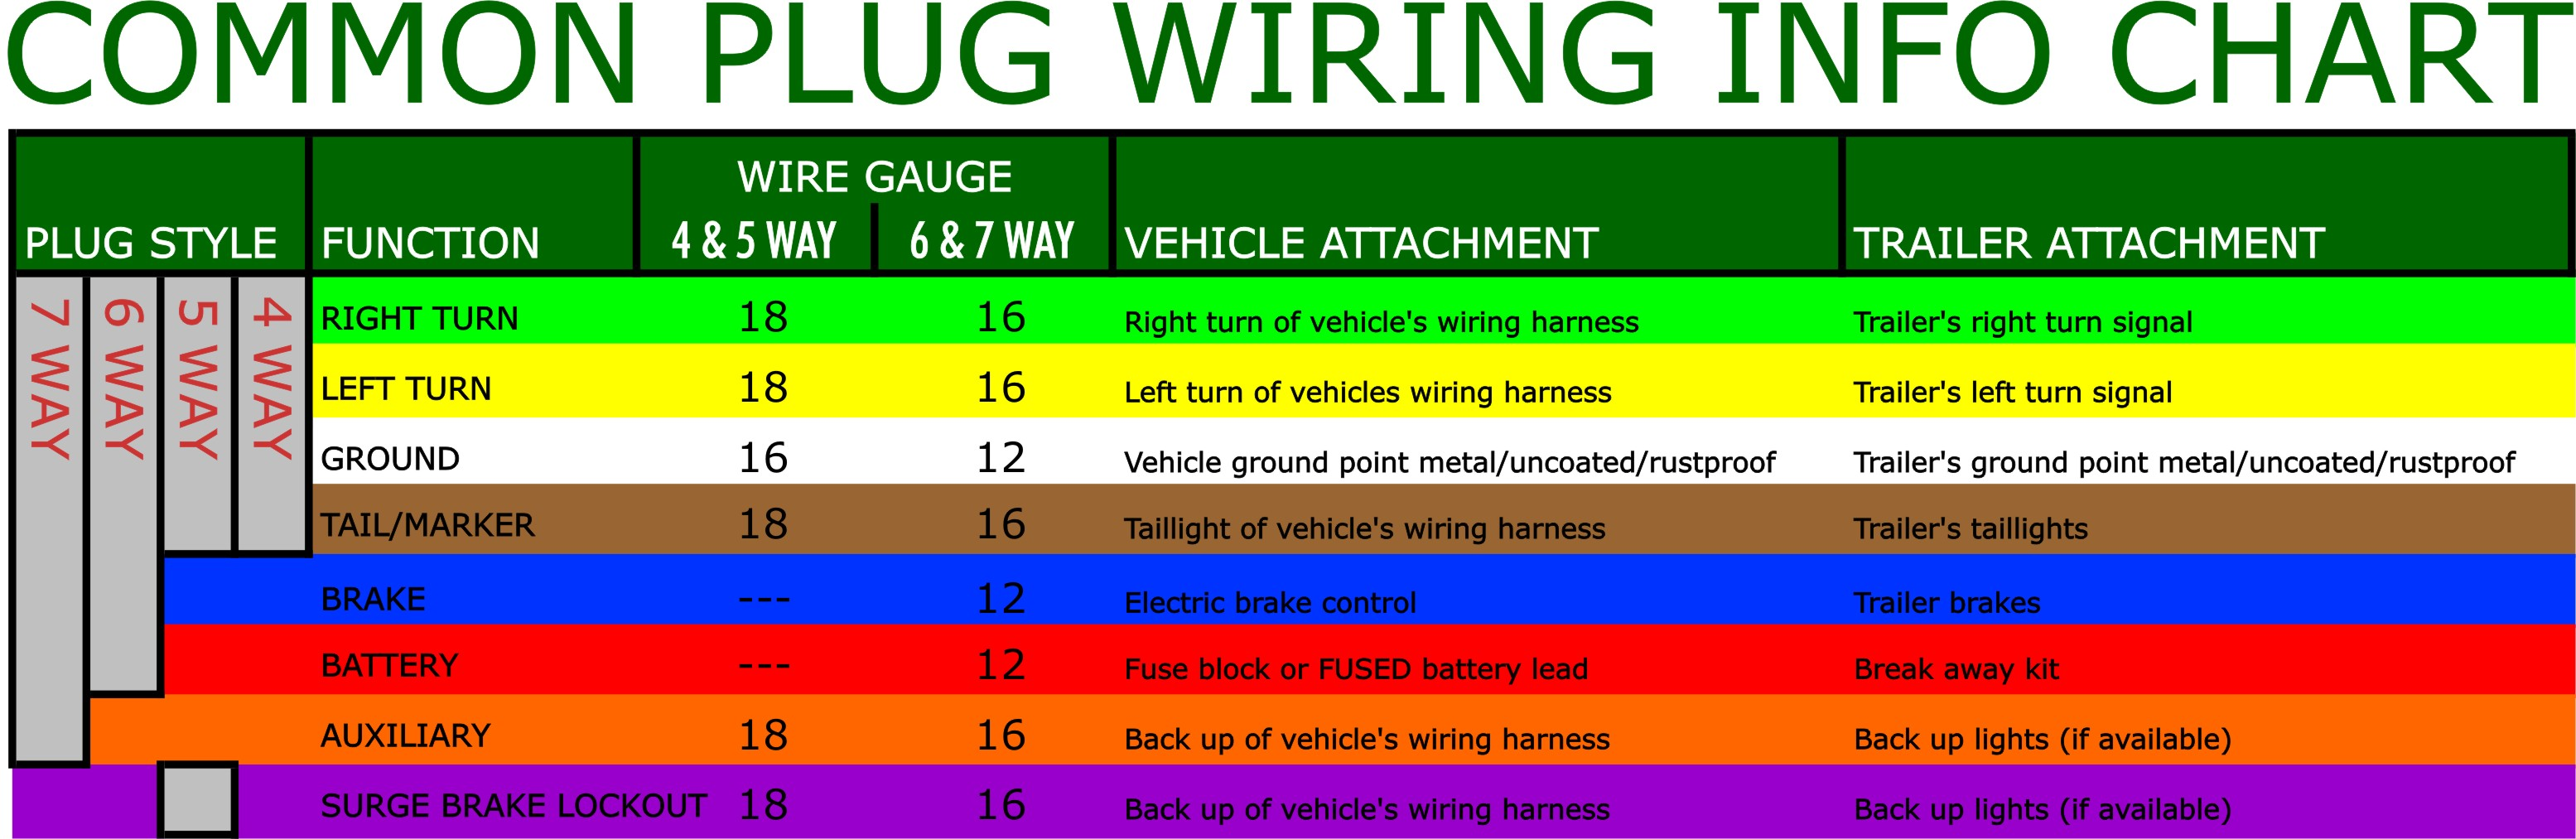 7 way wire harness chart schematics online rv trailer wiring color code trailer wiring harness color code #11